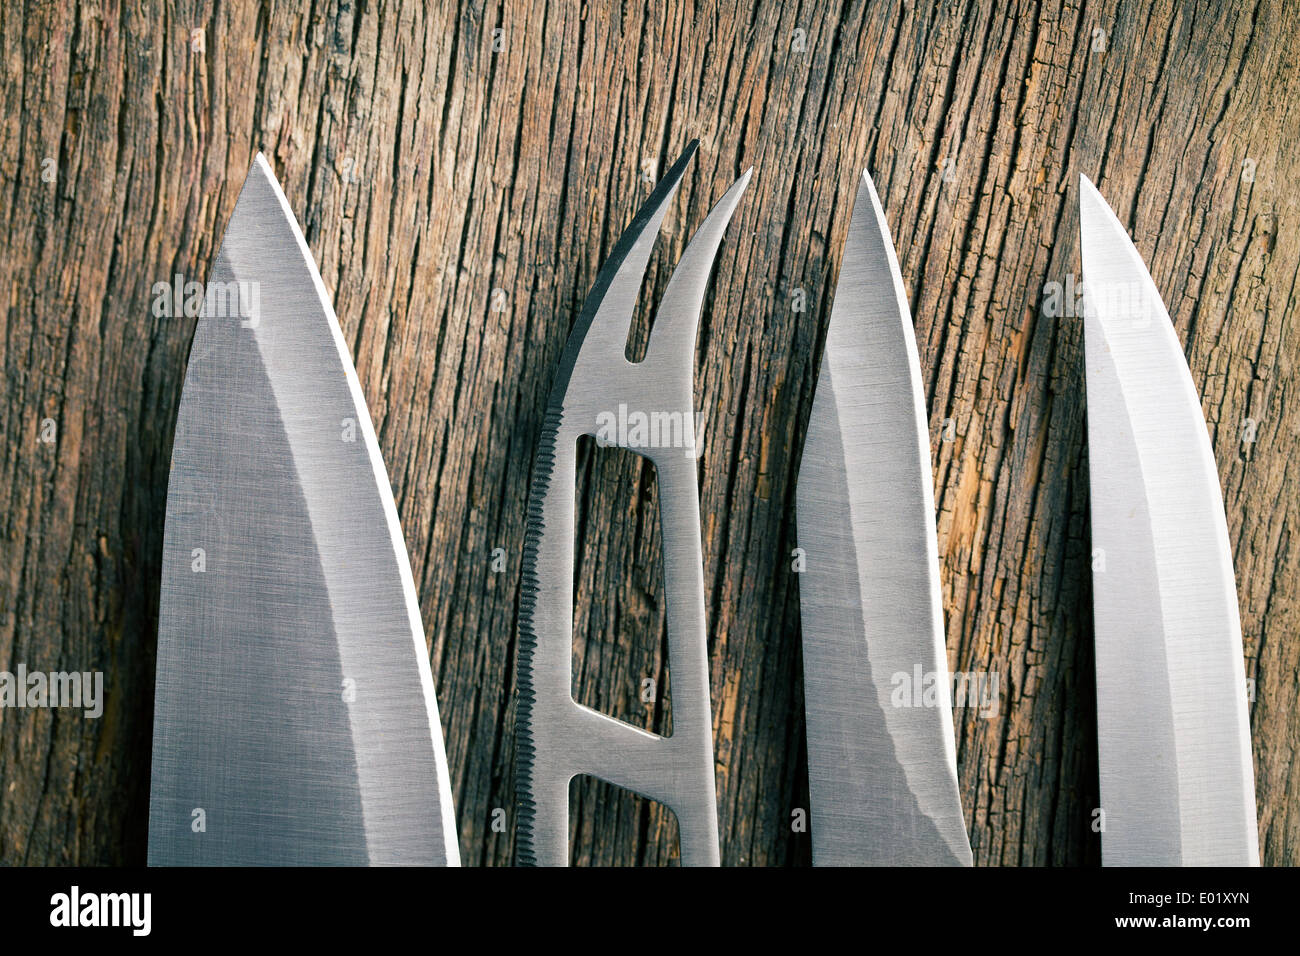 the blade of a kitchen knives - Stock Image